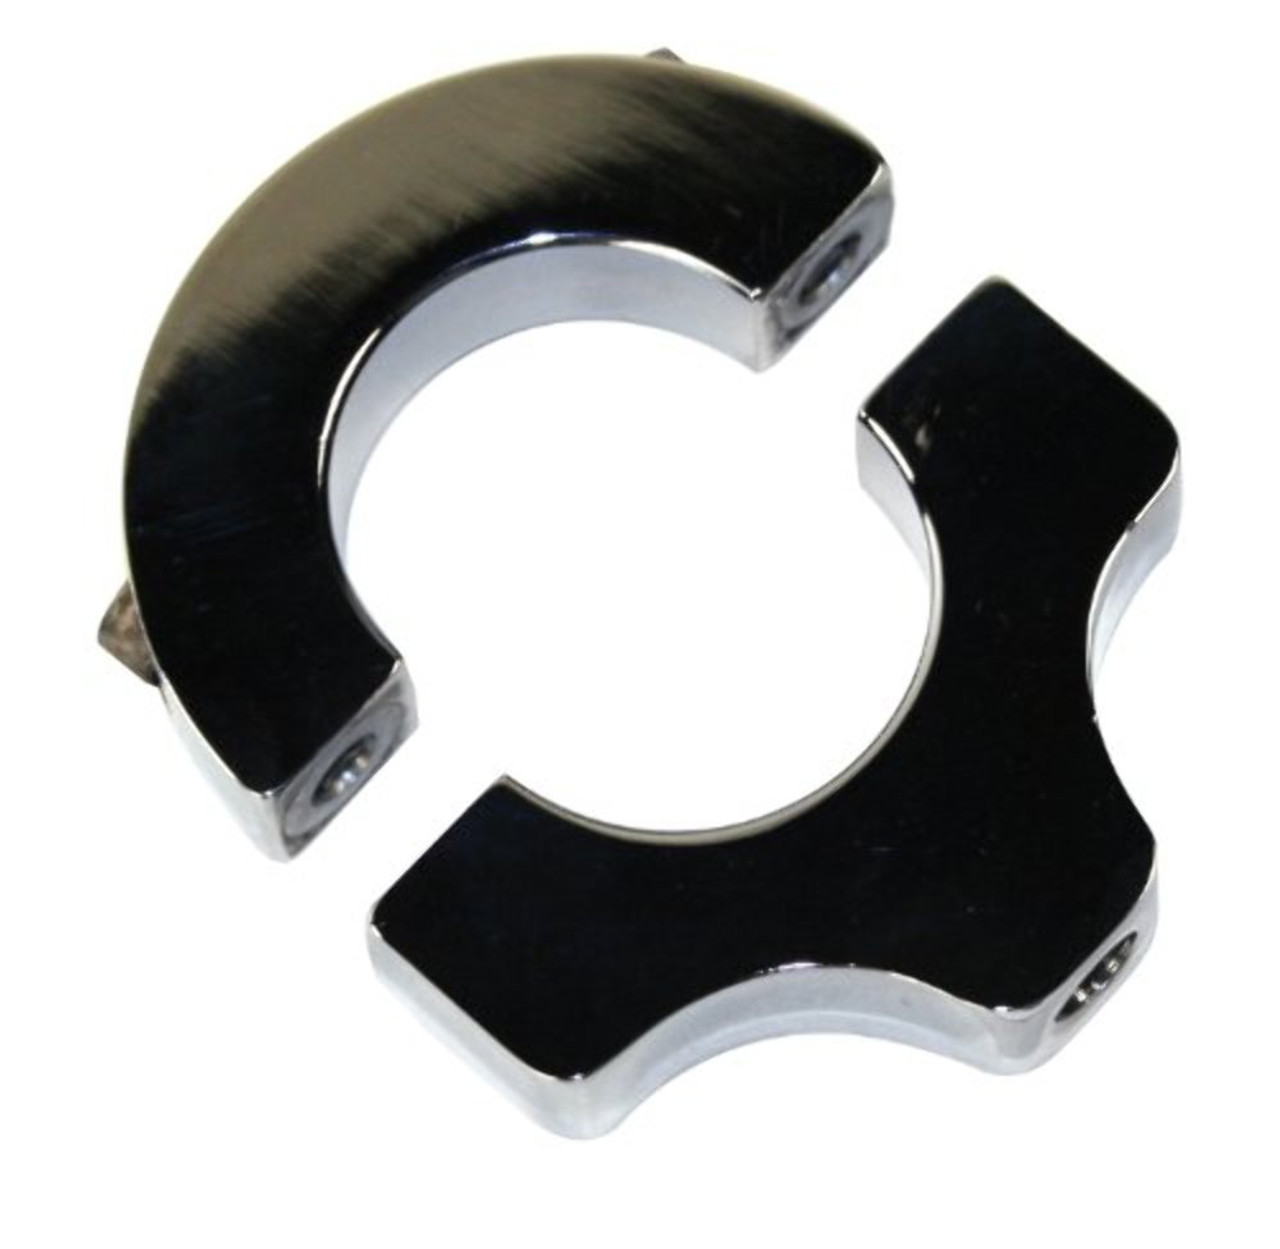 """EMPI Universal Billet Mounting Bracket For 1-1/2"""" Tube With 3/8""""-16 Threads for Roll Cage 17-2730"""